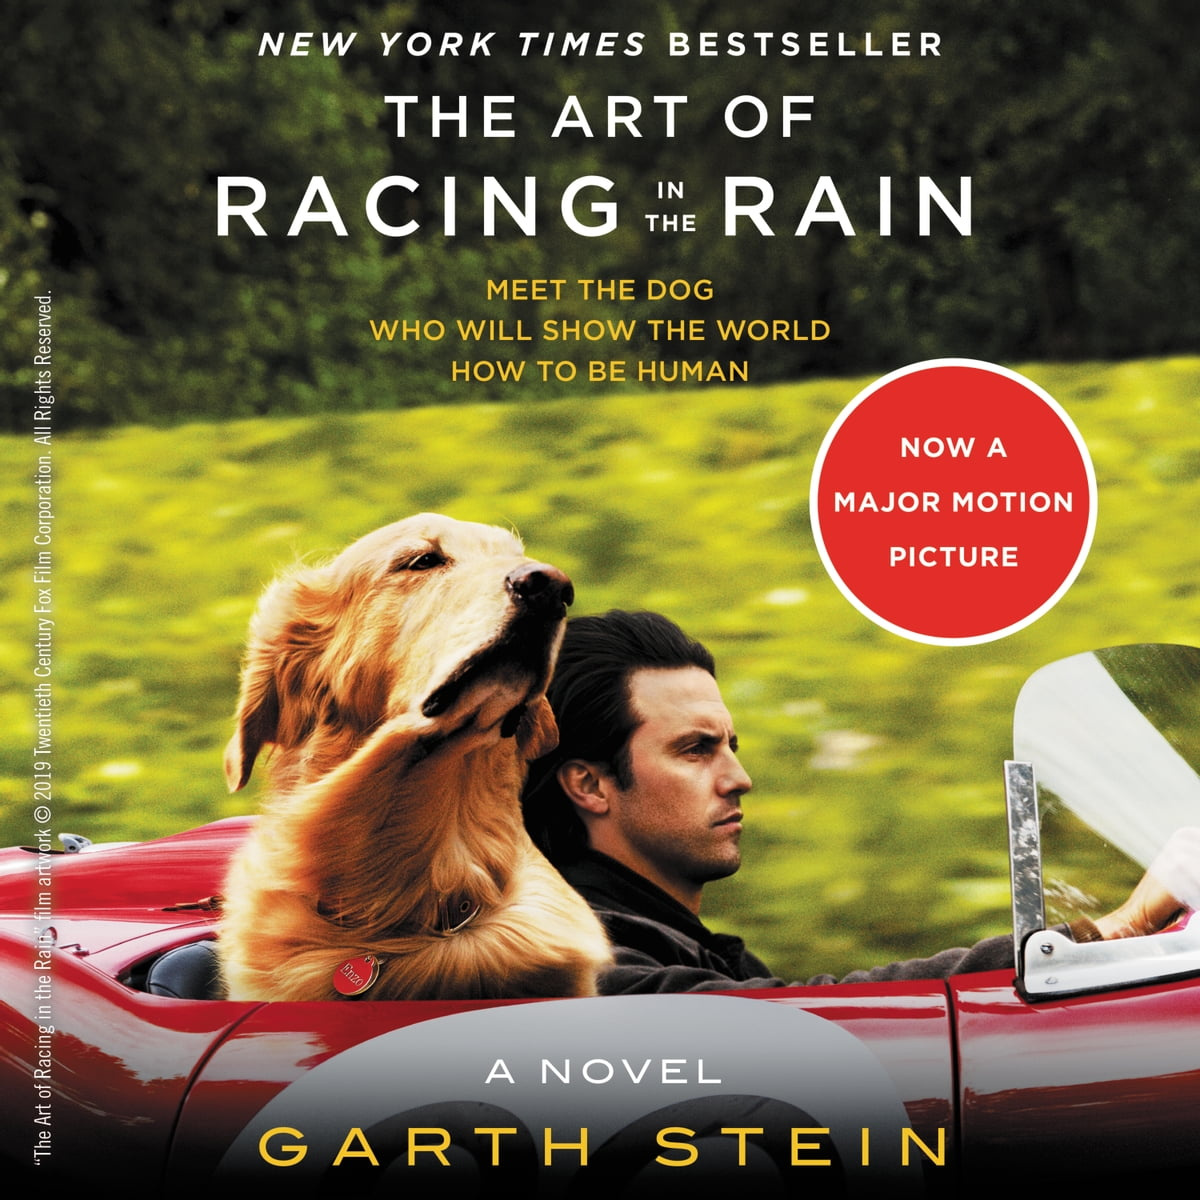 The Art of Racing in the Rain Audiobook by Garth Stein - 9780061630682 |  Rakuten Kobo